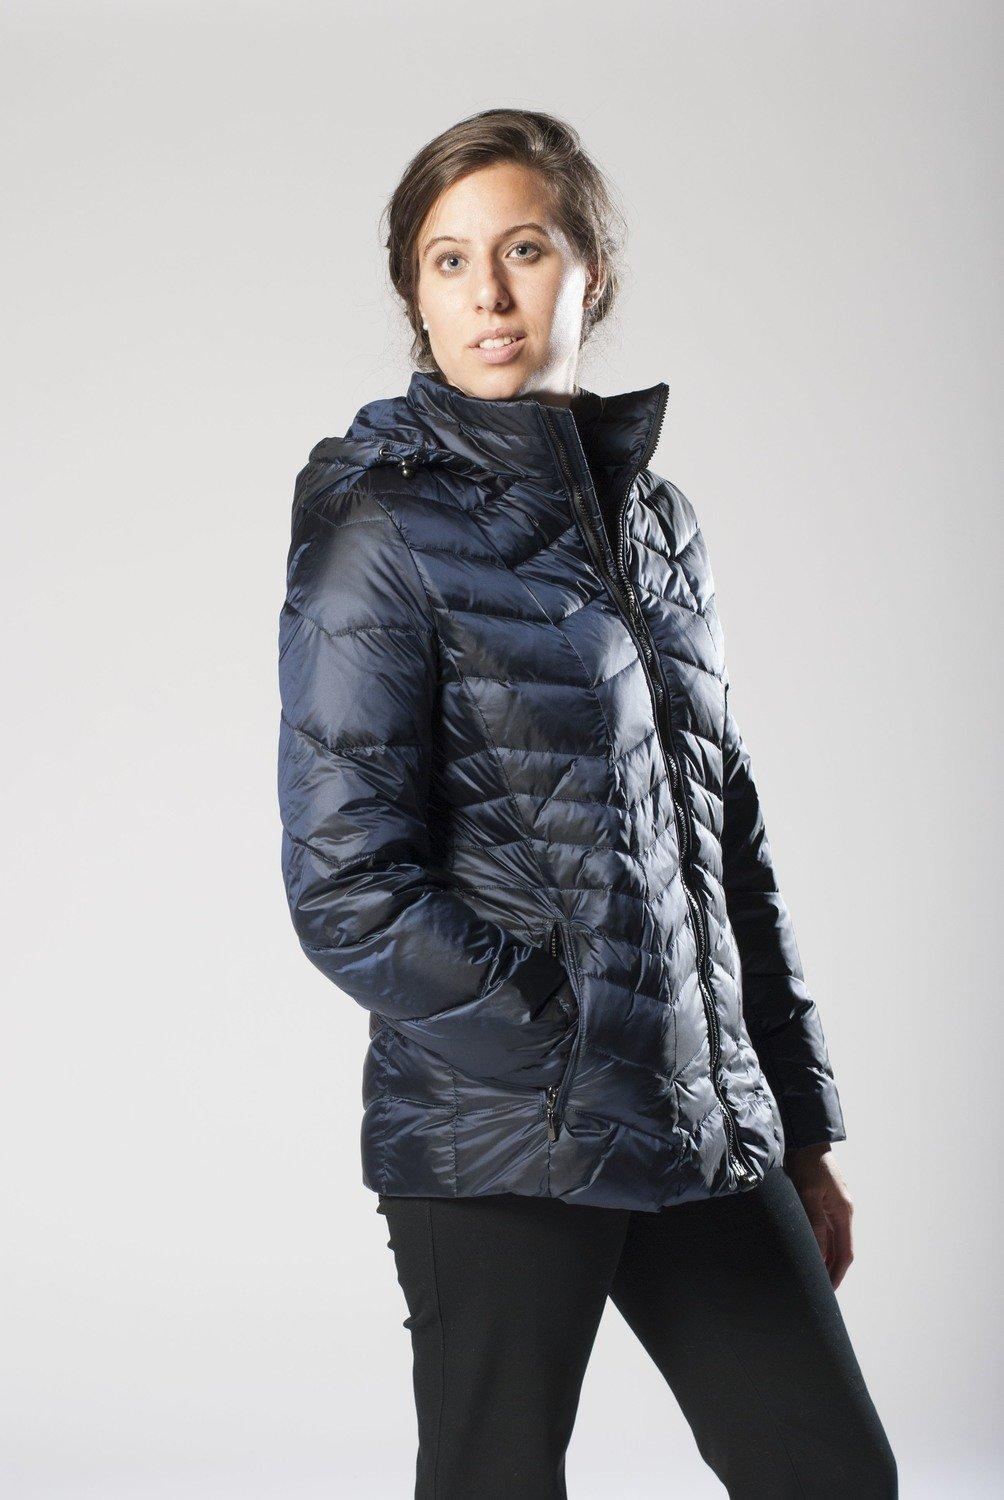 Jackets with magnetic zipper